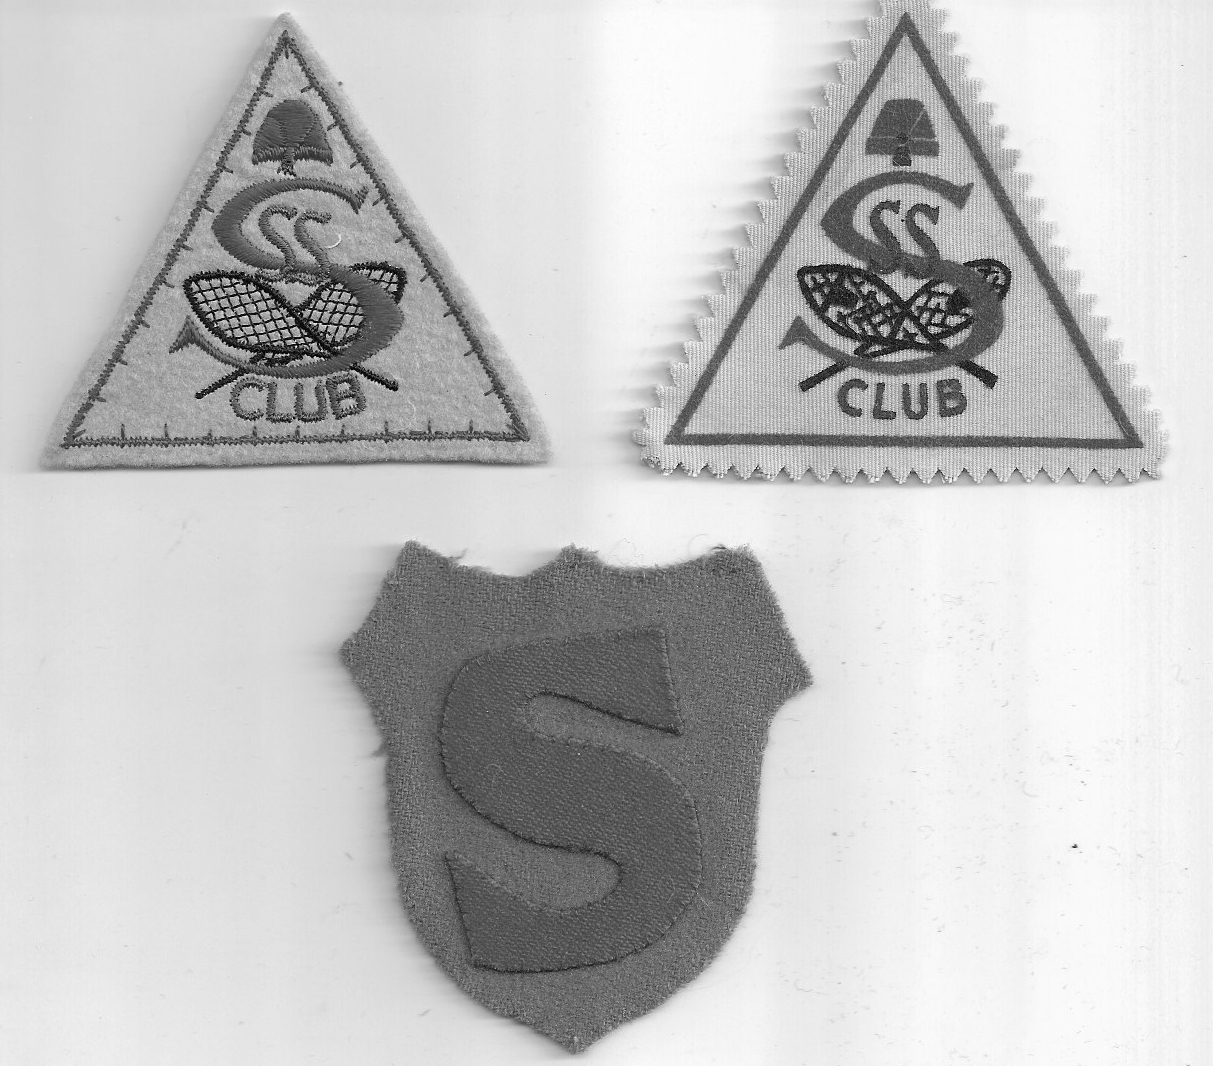 SSSC Original Badges